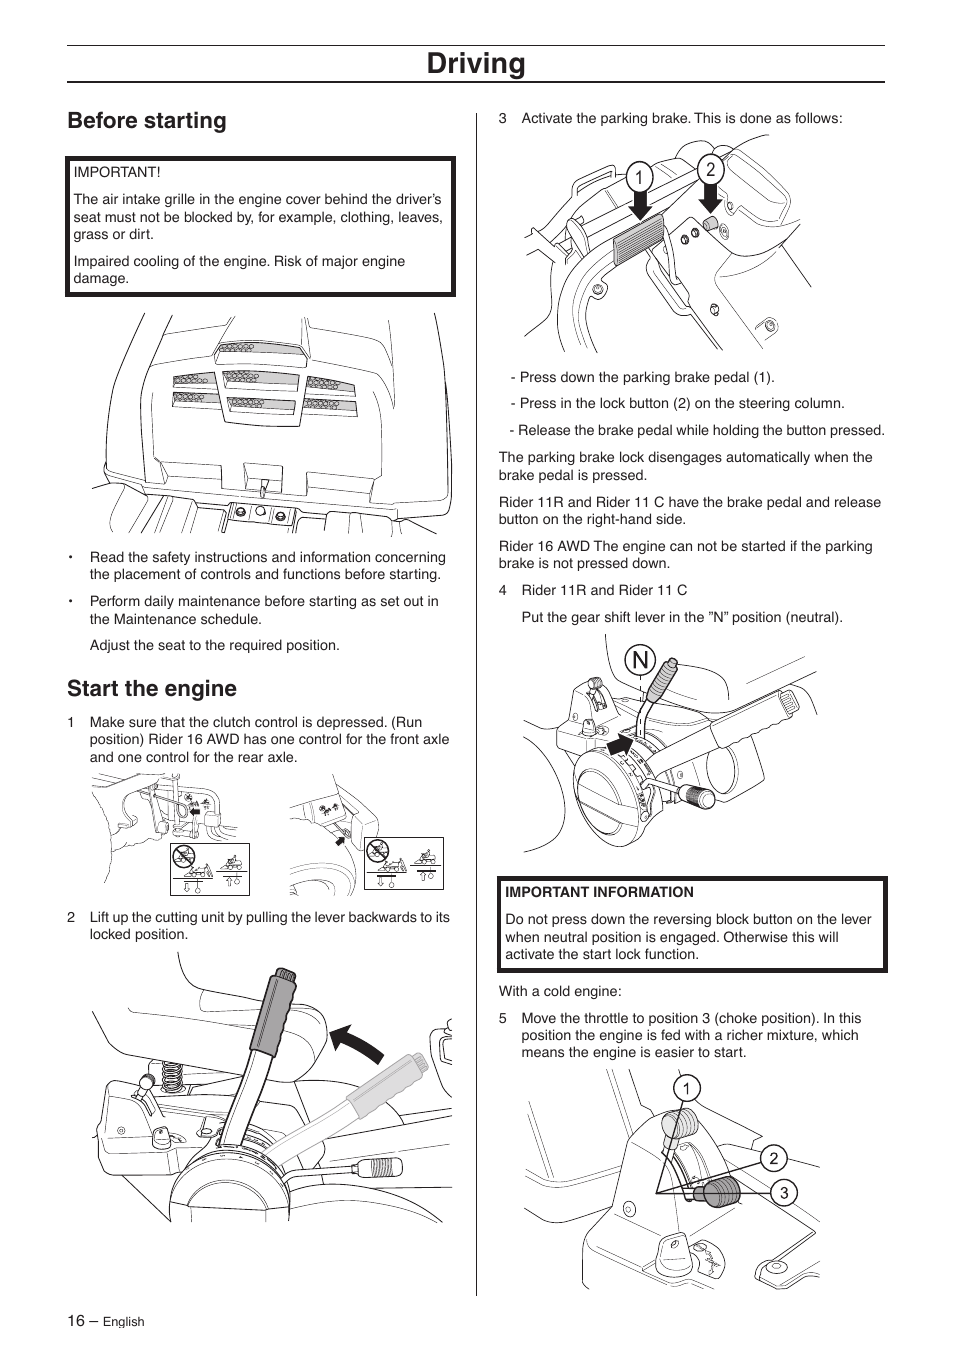 Before starting, Start the engine, Driving | Husqvarna 16 AWD User Manual |  Page